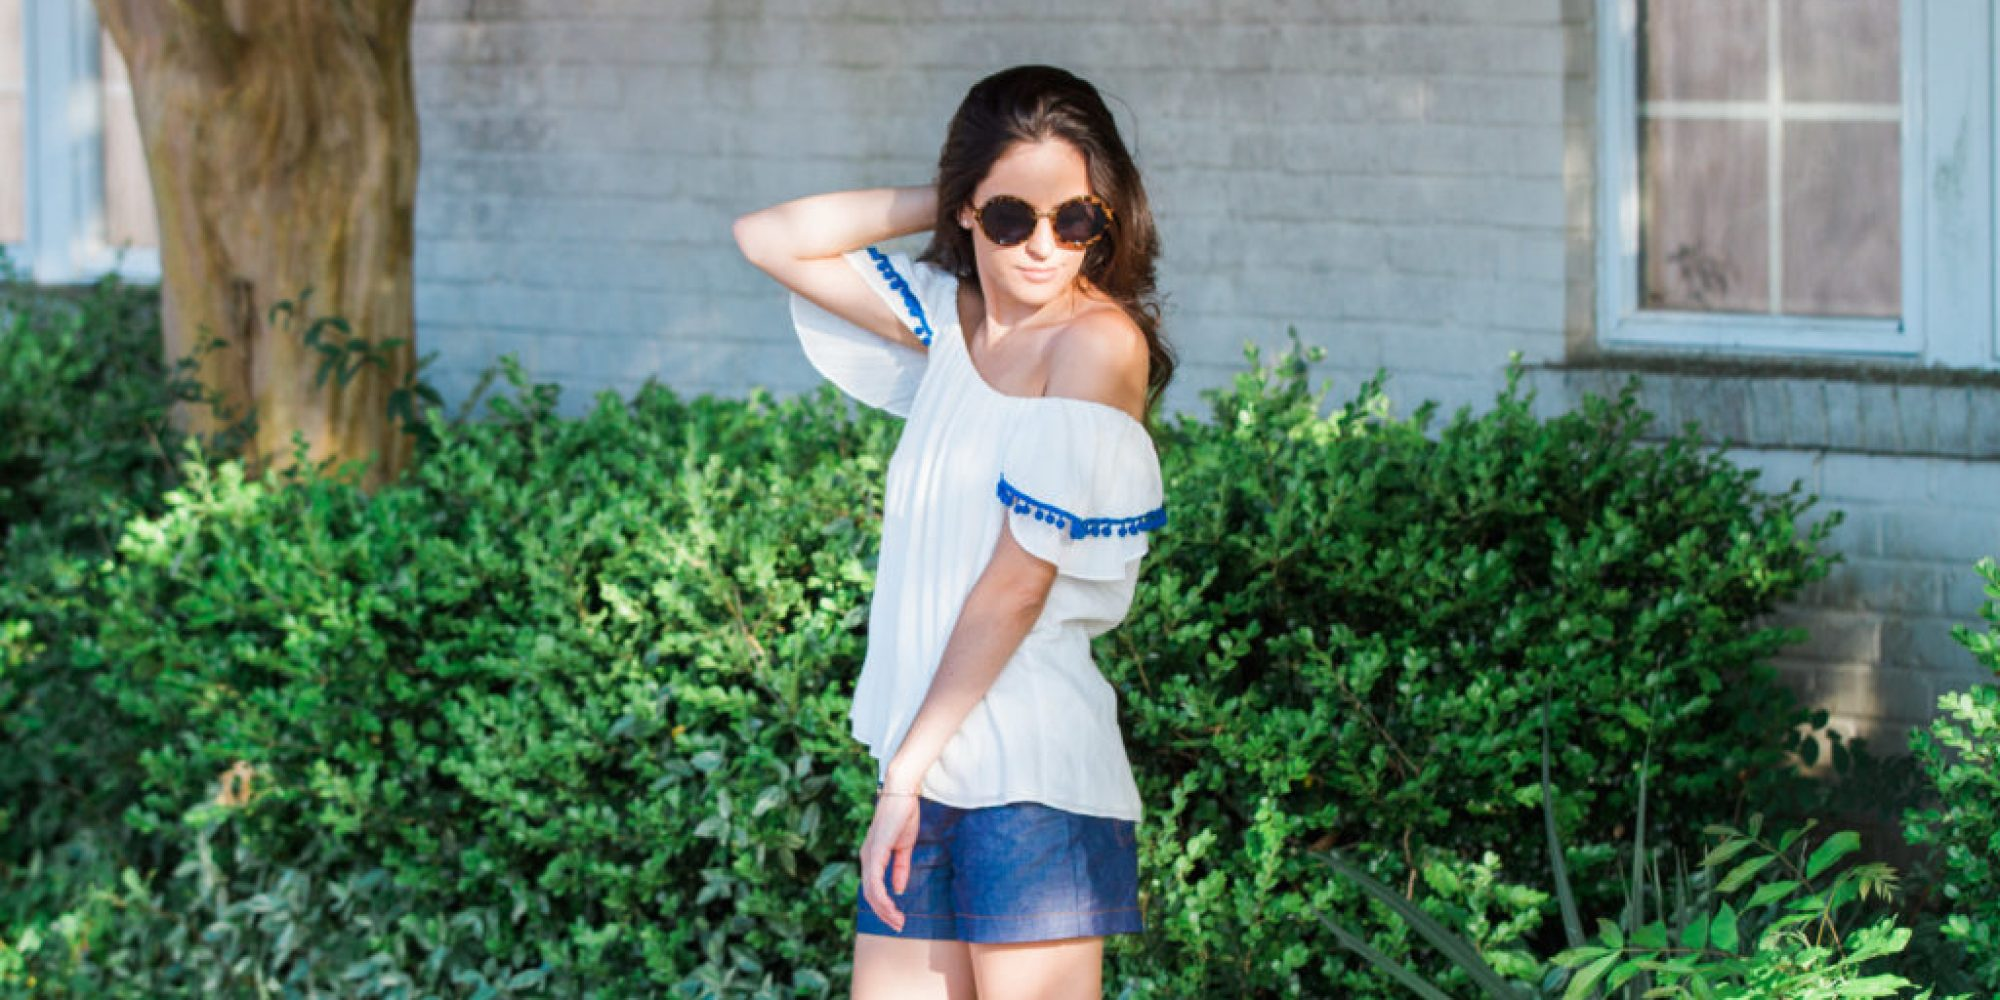 poms, off the shoulder, summer style, casual style